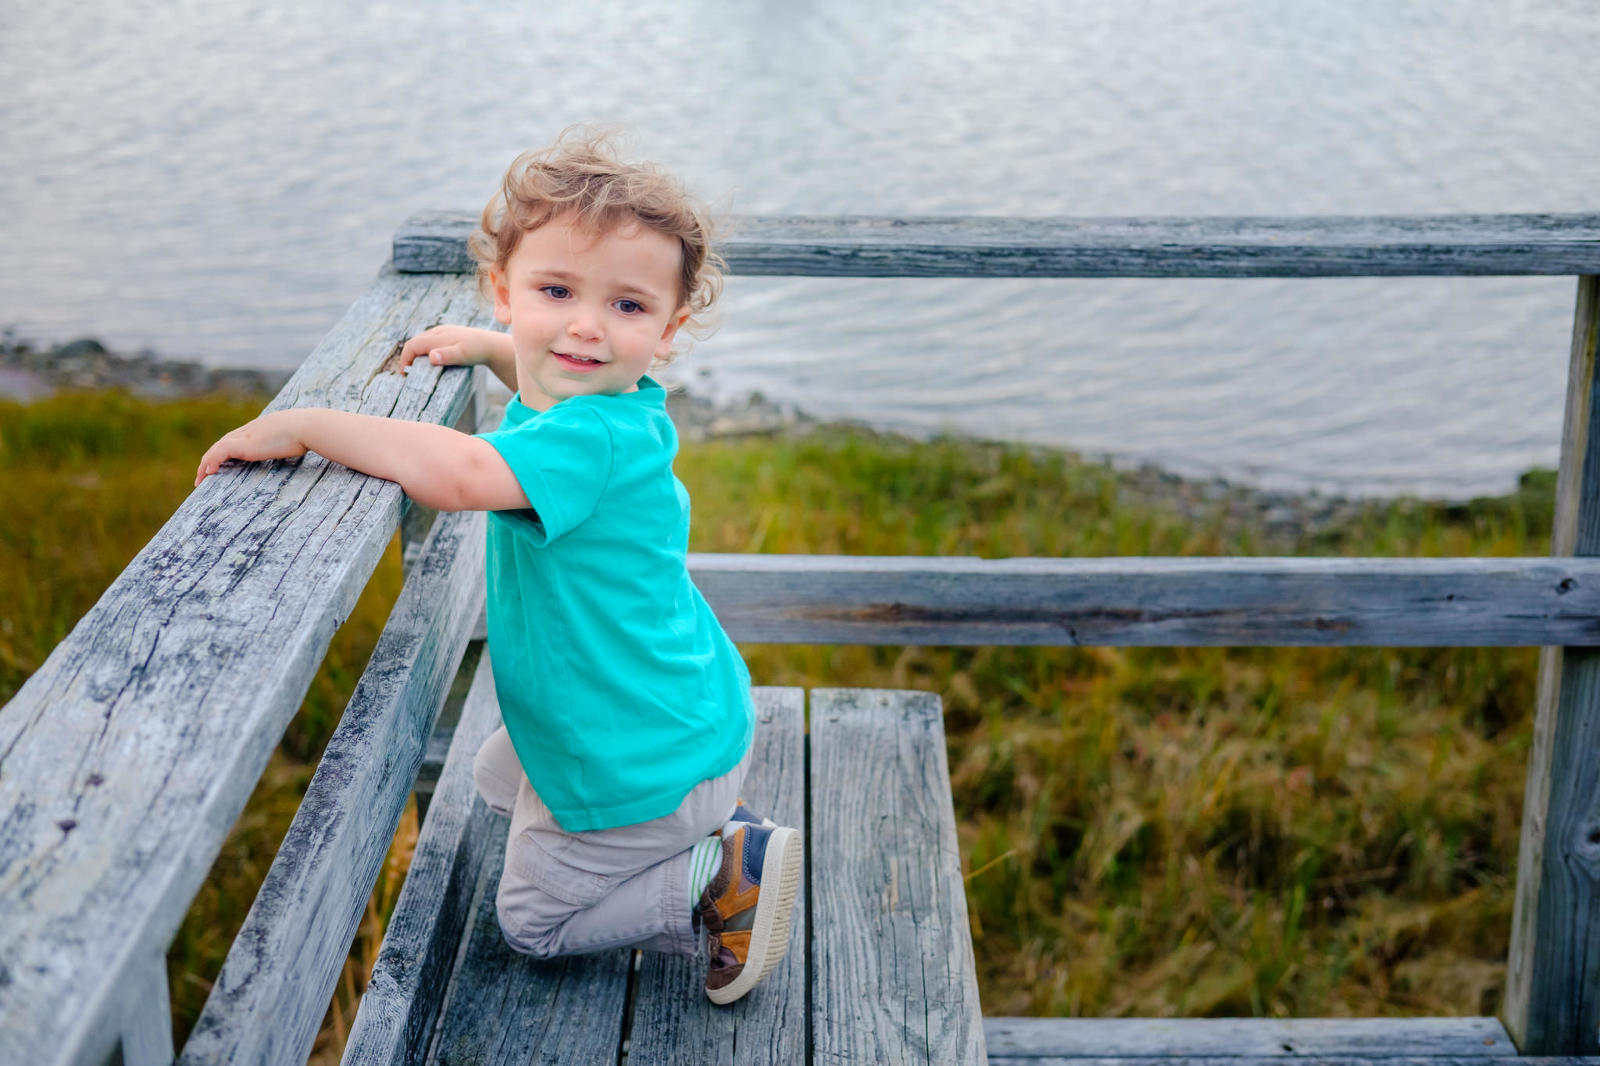 Portrait of a toddler boy with curly windswept hair in a green shirt kneeling on a wooden dock